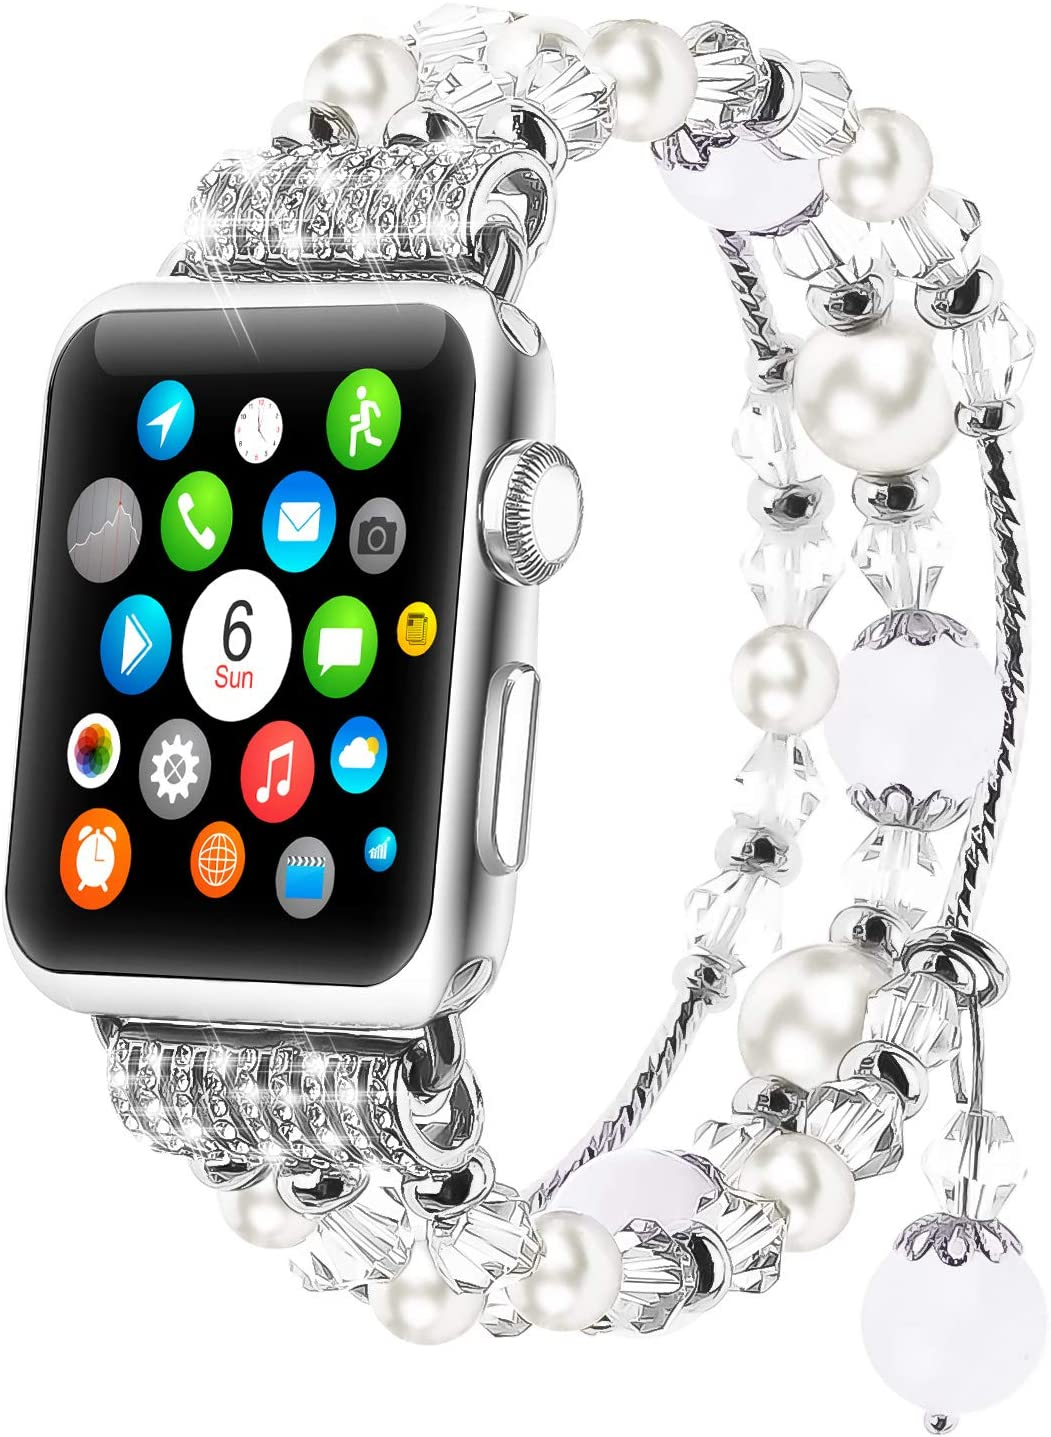 Tomazon Bracelet Compatible for Apple Watch Band 40mm 38mm, Fashion Handmade Elastic Crystal Pearl Dressy Bands for Women Girls iWatch Series 6 SE 5 4 3 2 1 - White